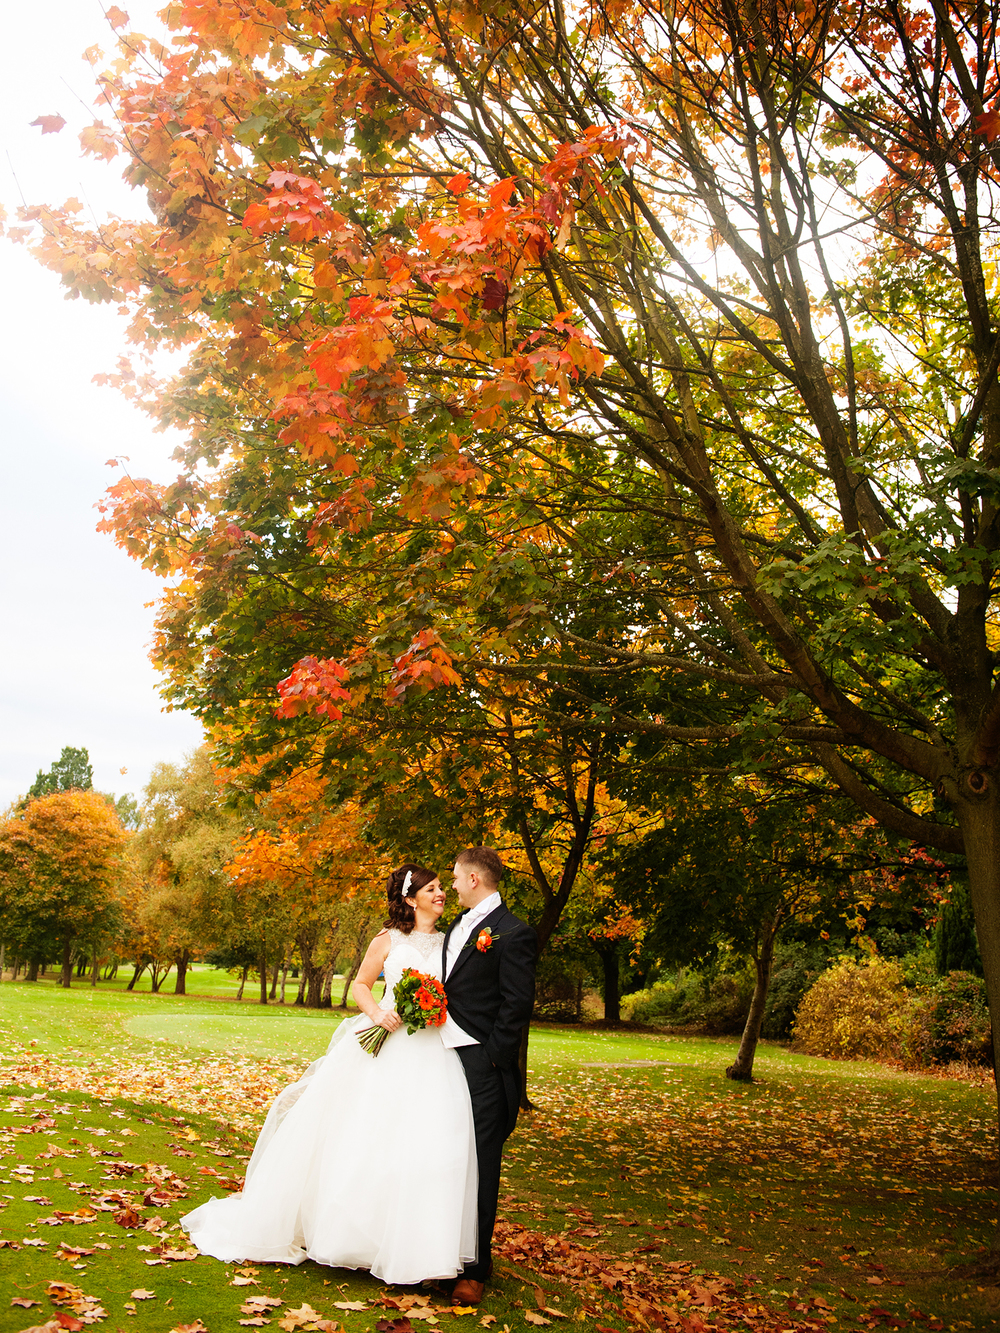 weekday-wedding-photos-jenny-mcavoy-autumn-wedding-swinton-park-golf-club-ronald-joyce-dress, autumnal-wedding, Yorkshire wedding